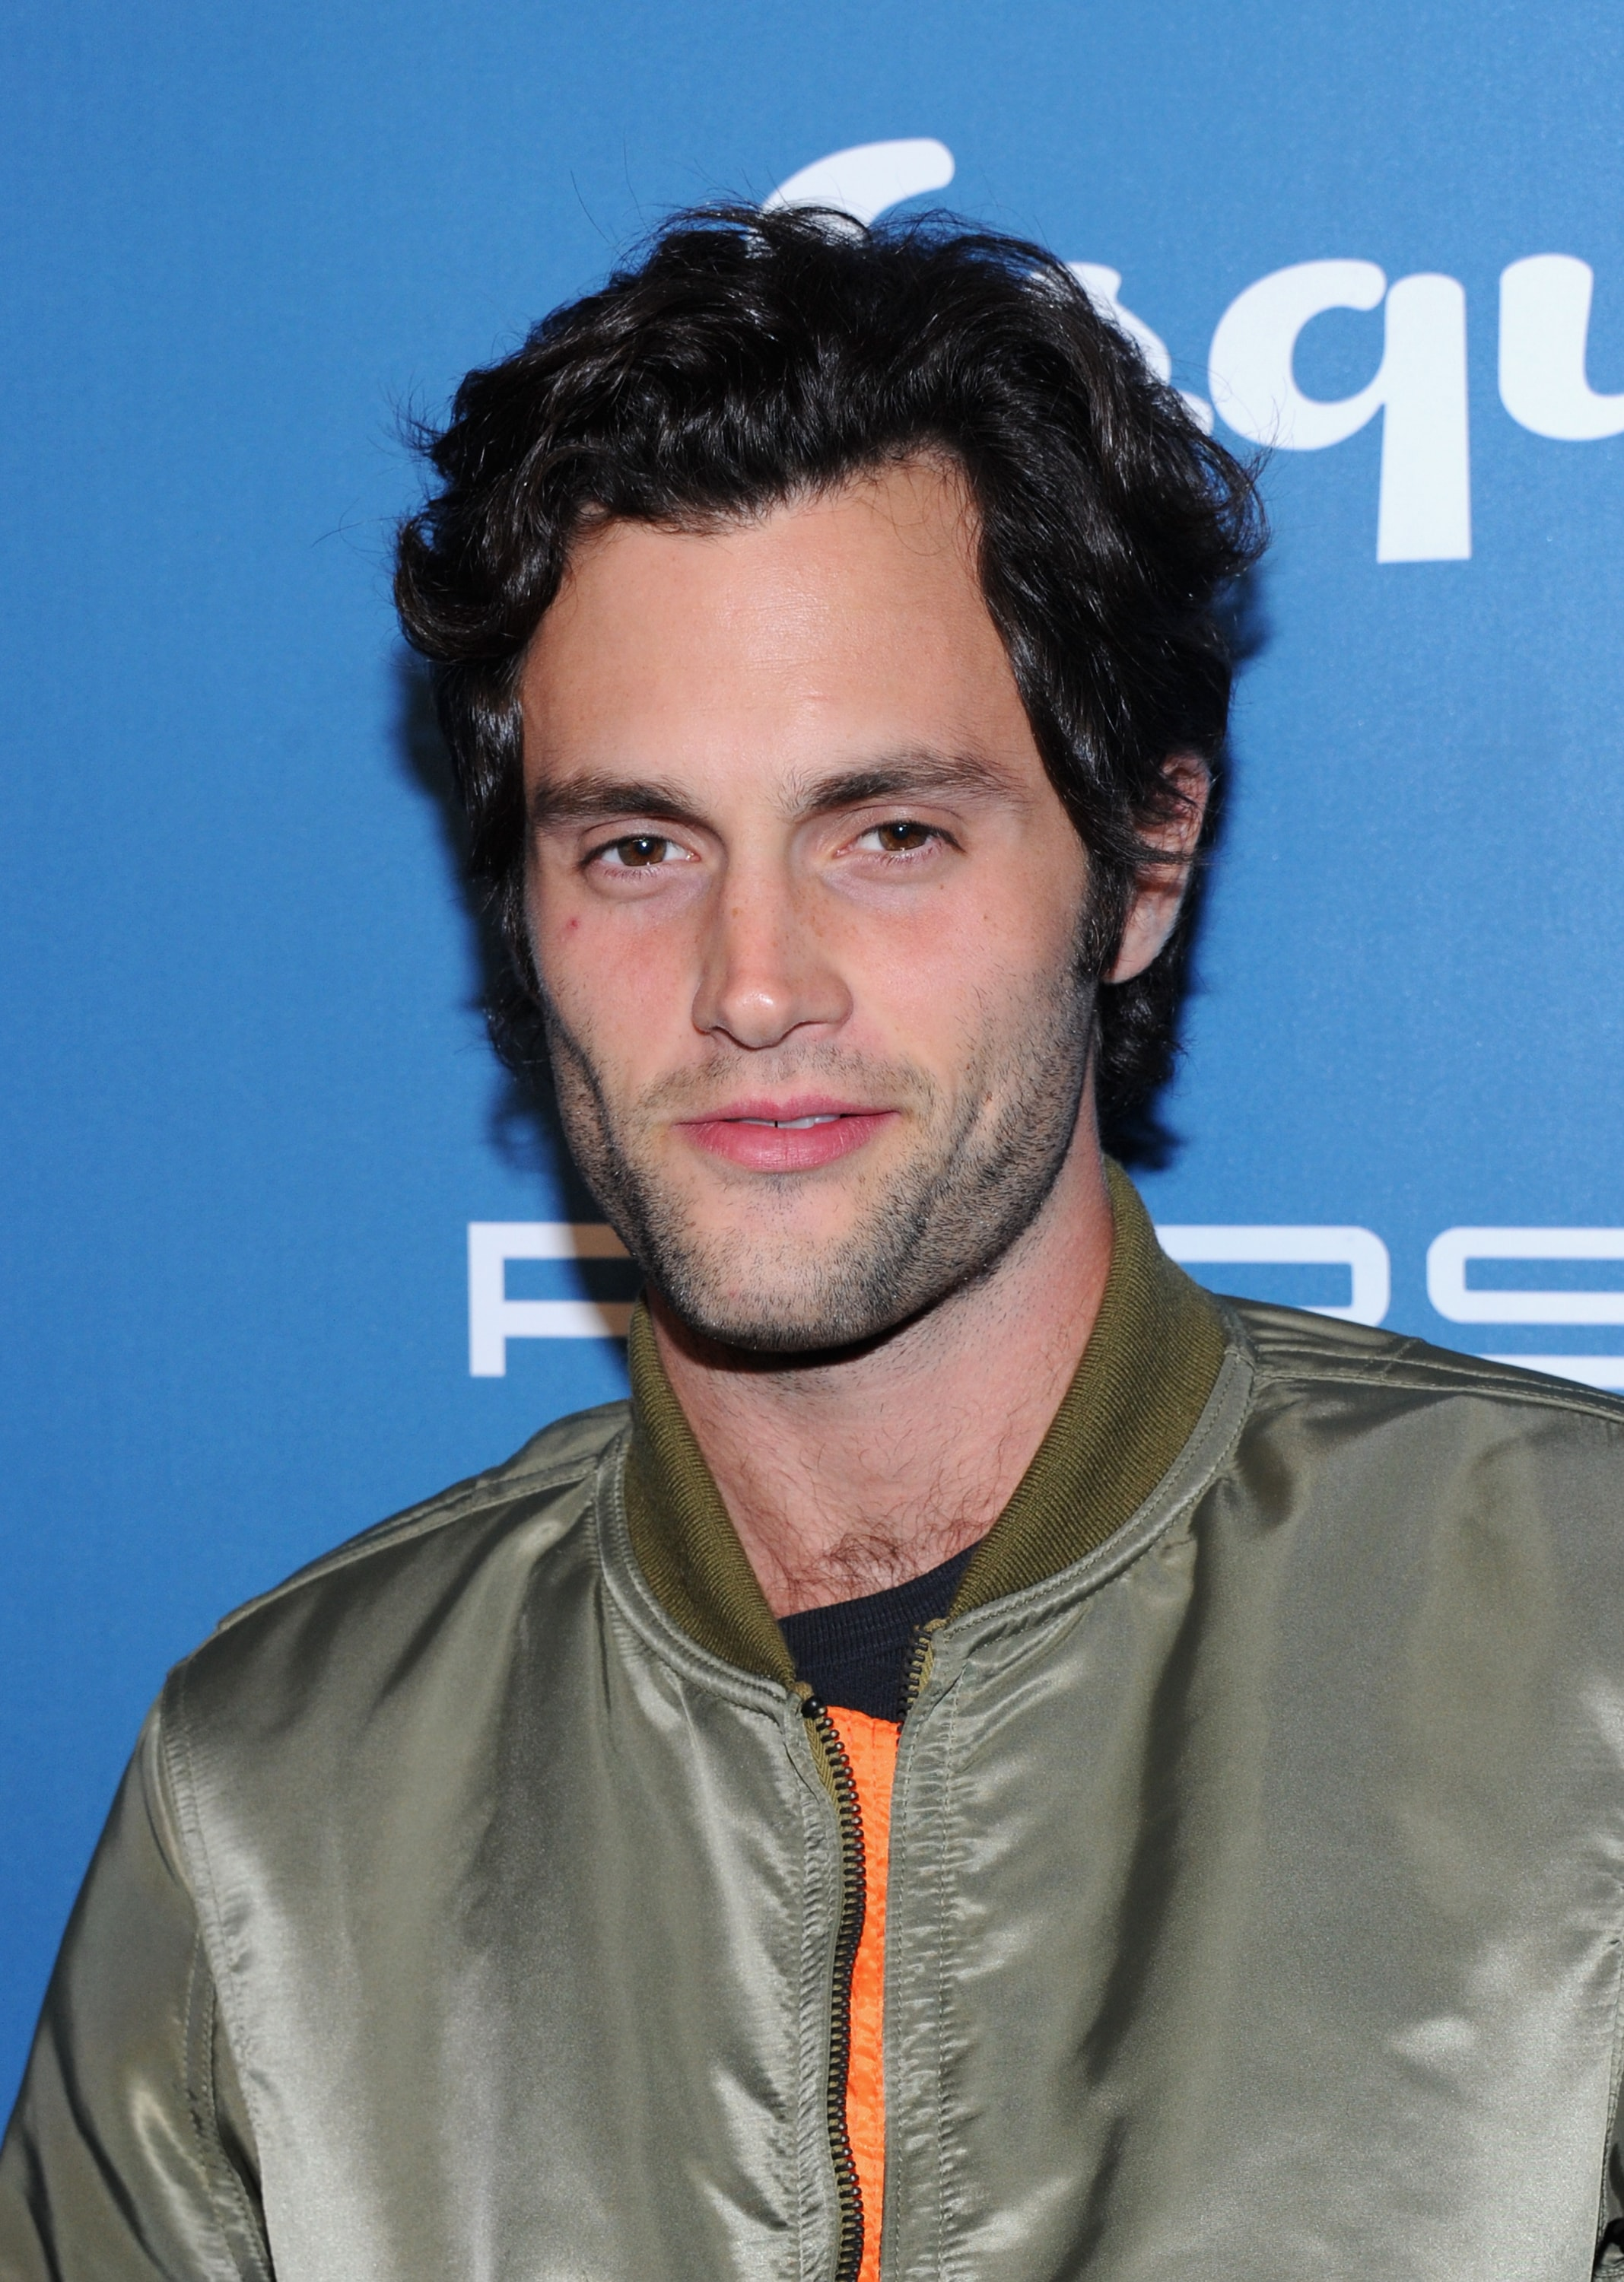 Penn Badgley For mobile